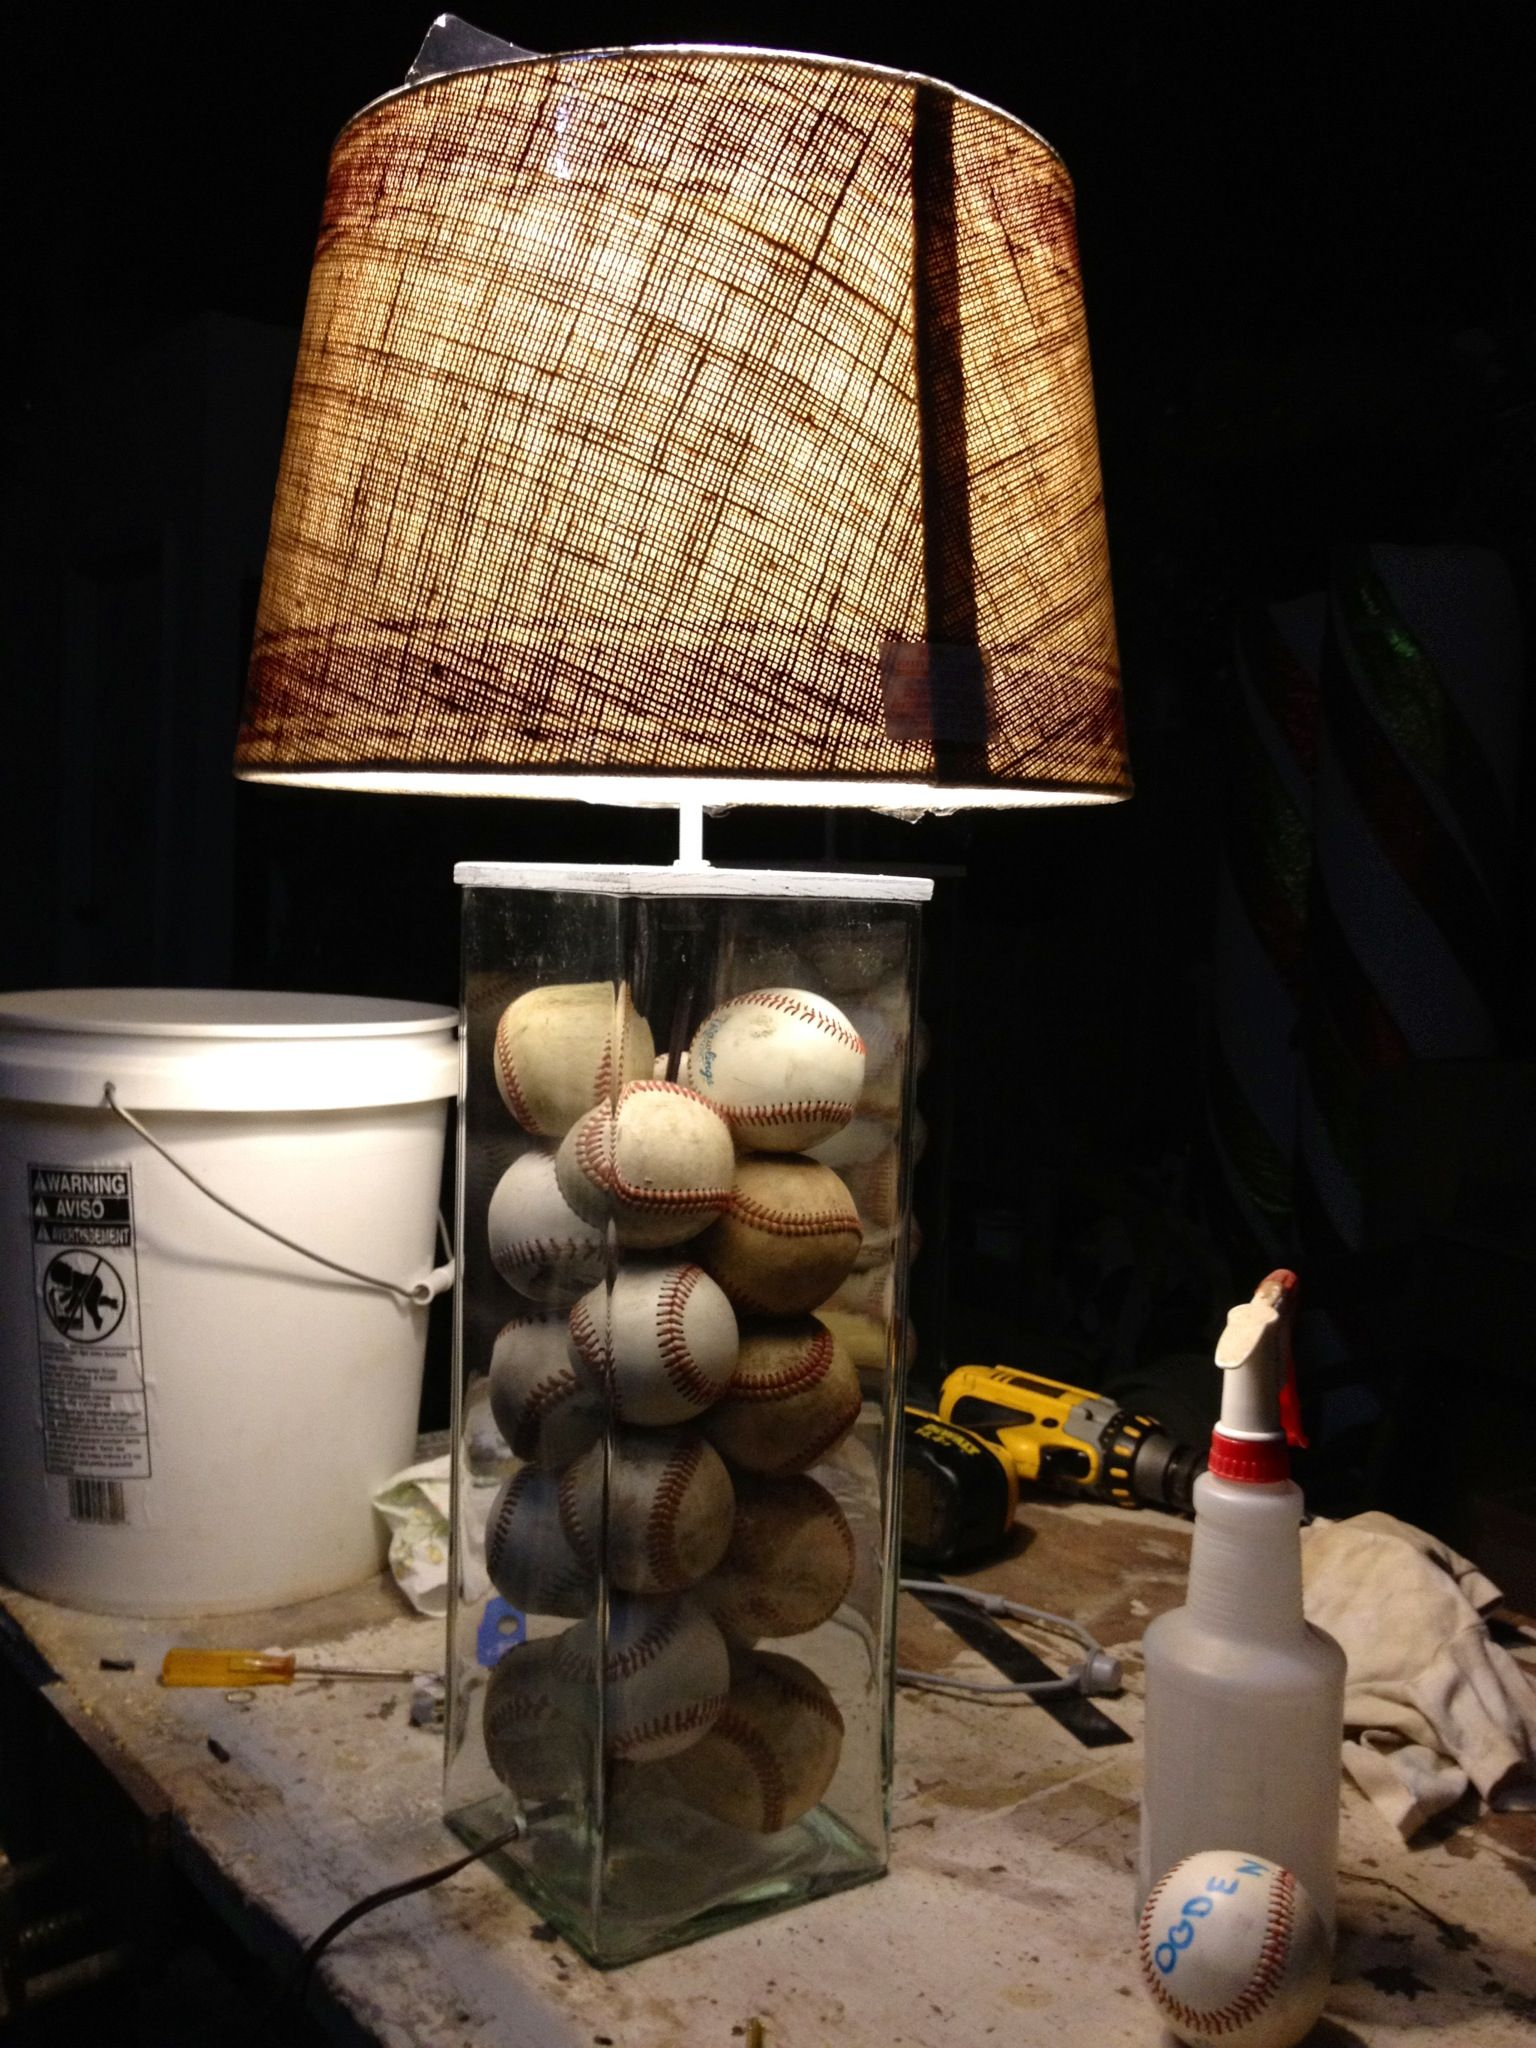 DIY Baseball Lamp Scroll Down To See This What A Great Idea For Boys Room